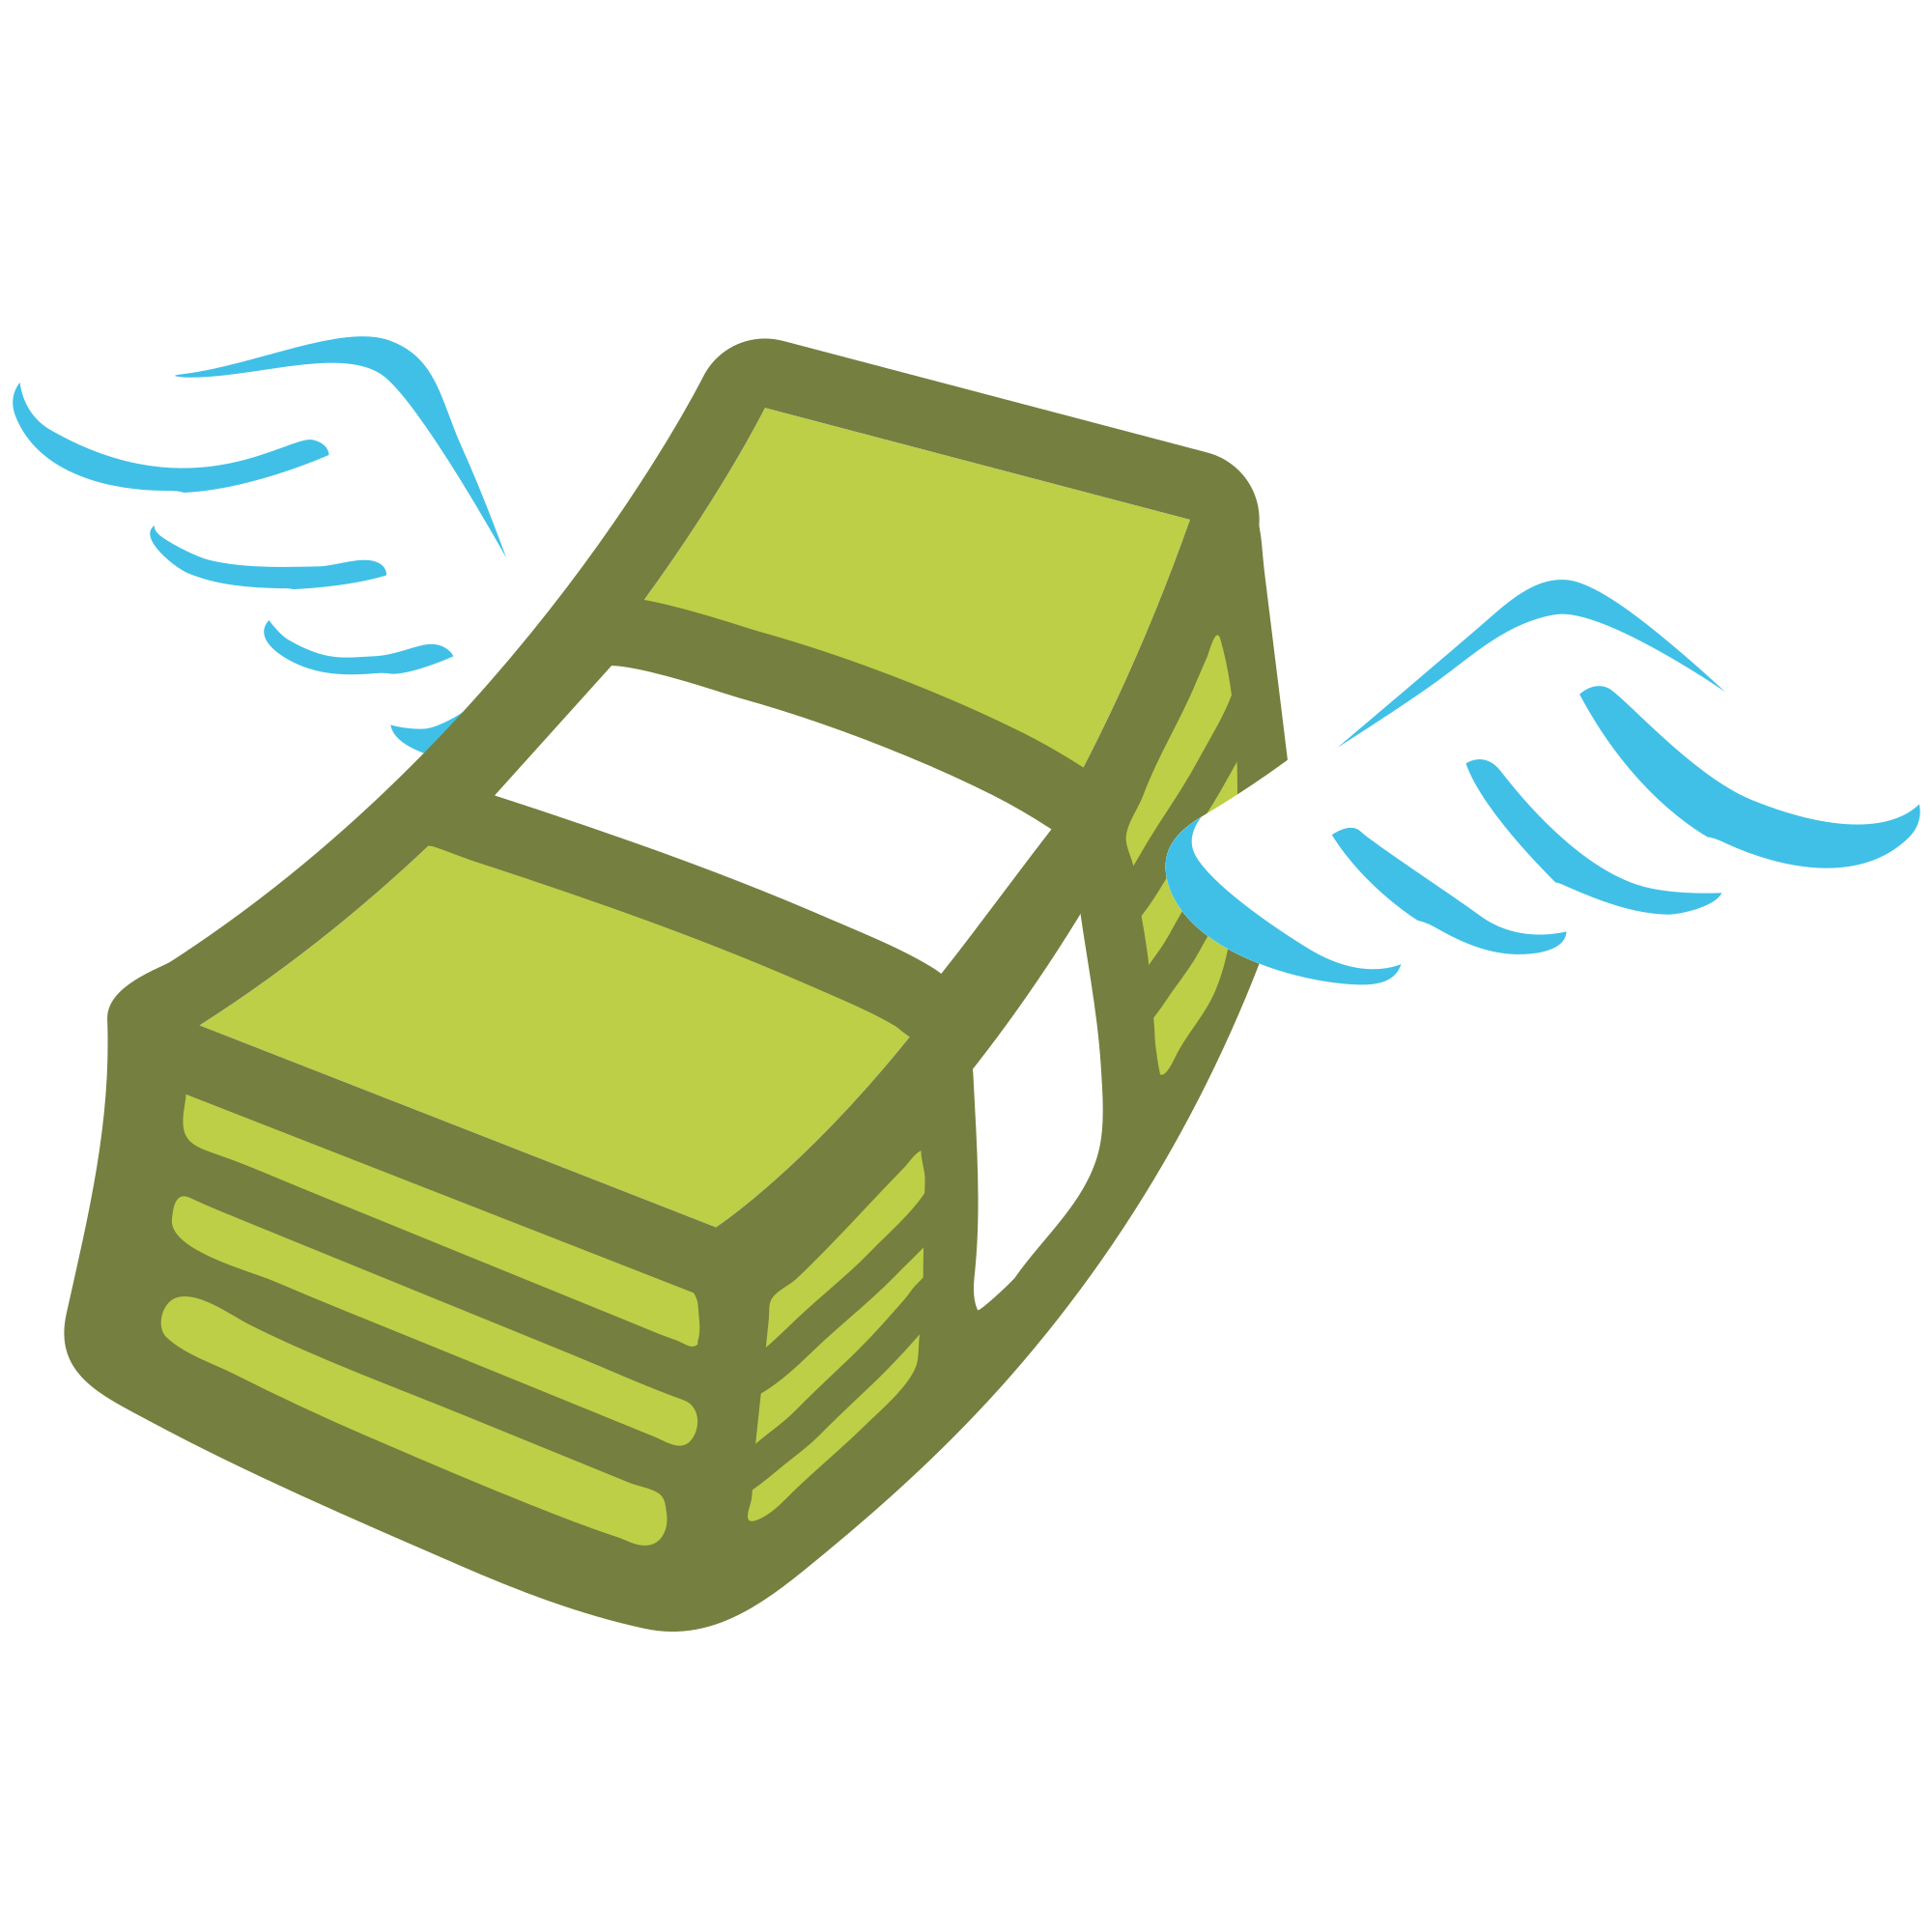 Money svg #15, Download drawings